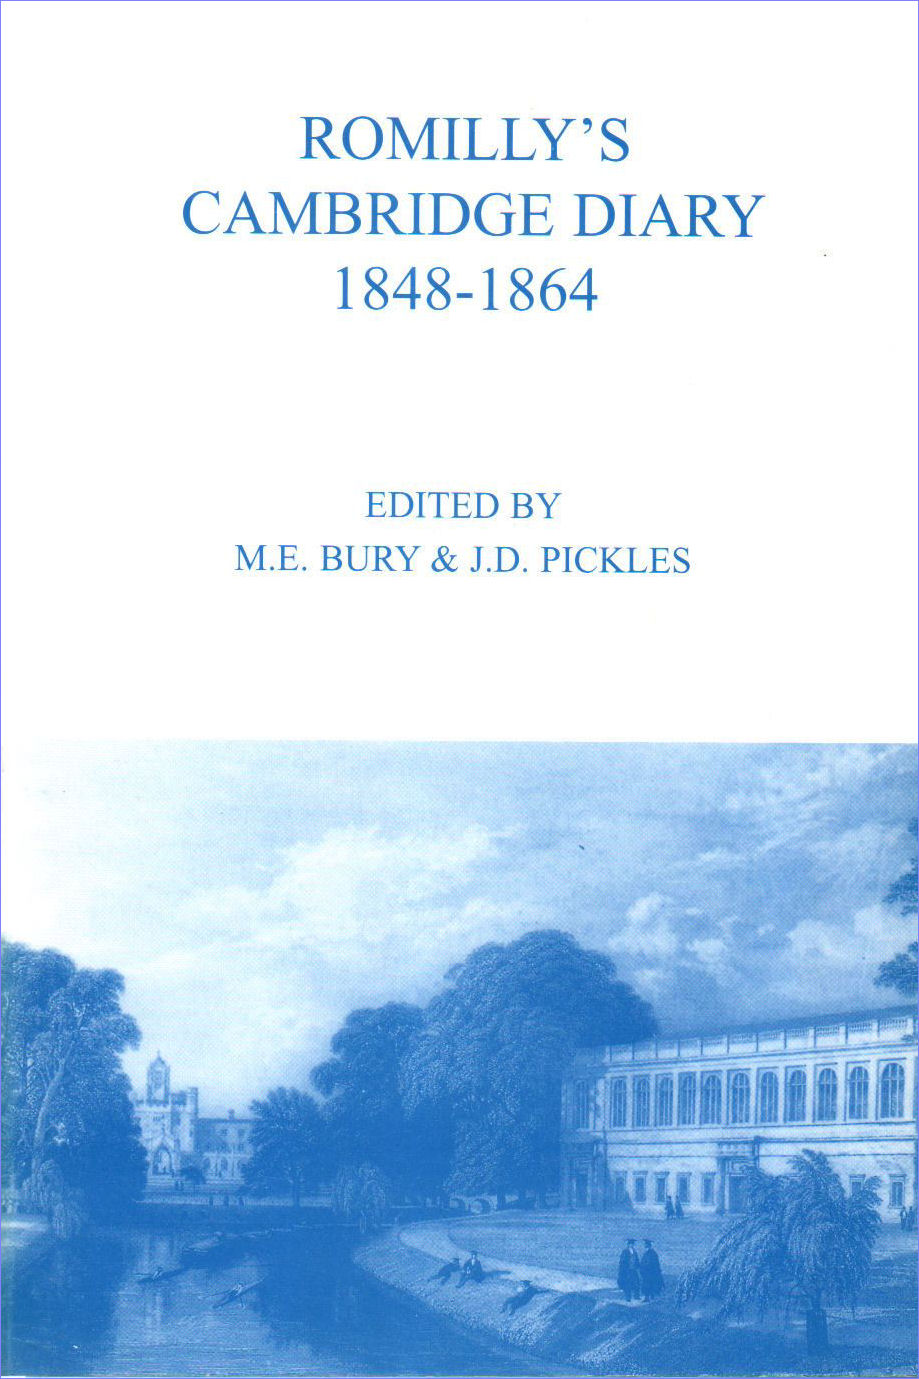 14. Romilly's Cambridge Diary 1848-1864.  Edited by M.E. Bury and J.D. Pickles.